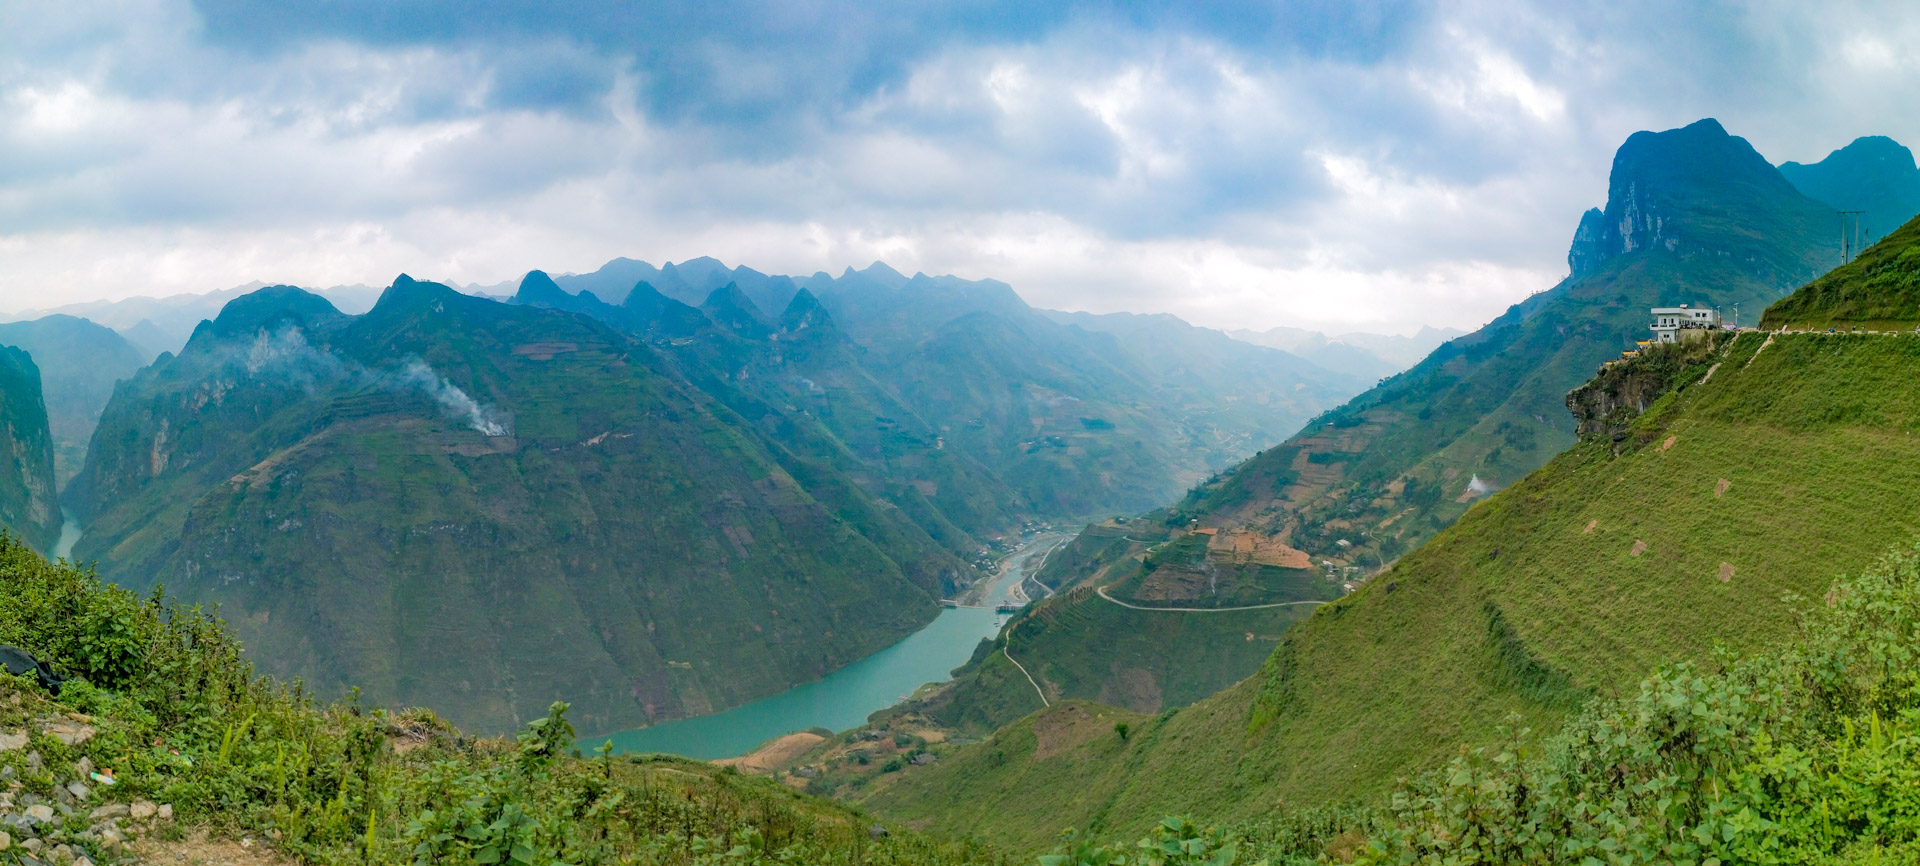 A panoramic view of the Ma Pi Leng mountain pass in Ha Giang Province, Vietnam with the Ma Pi Leng Panorama building spotted in the far upper-right corner. Photo: Tuan Son / Tuoi Tre News